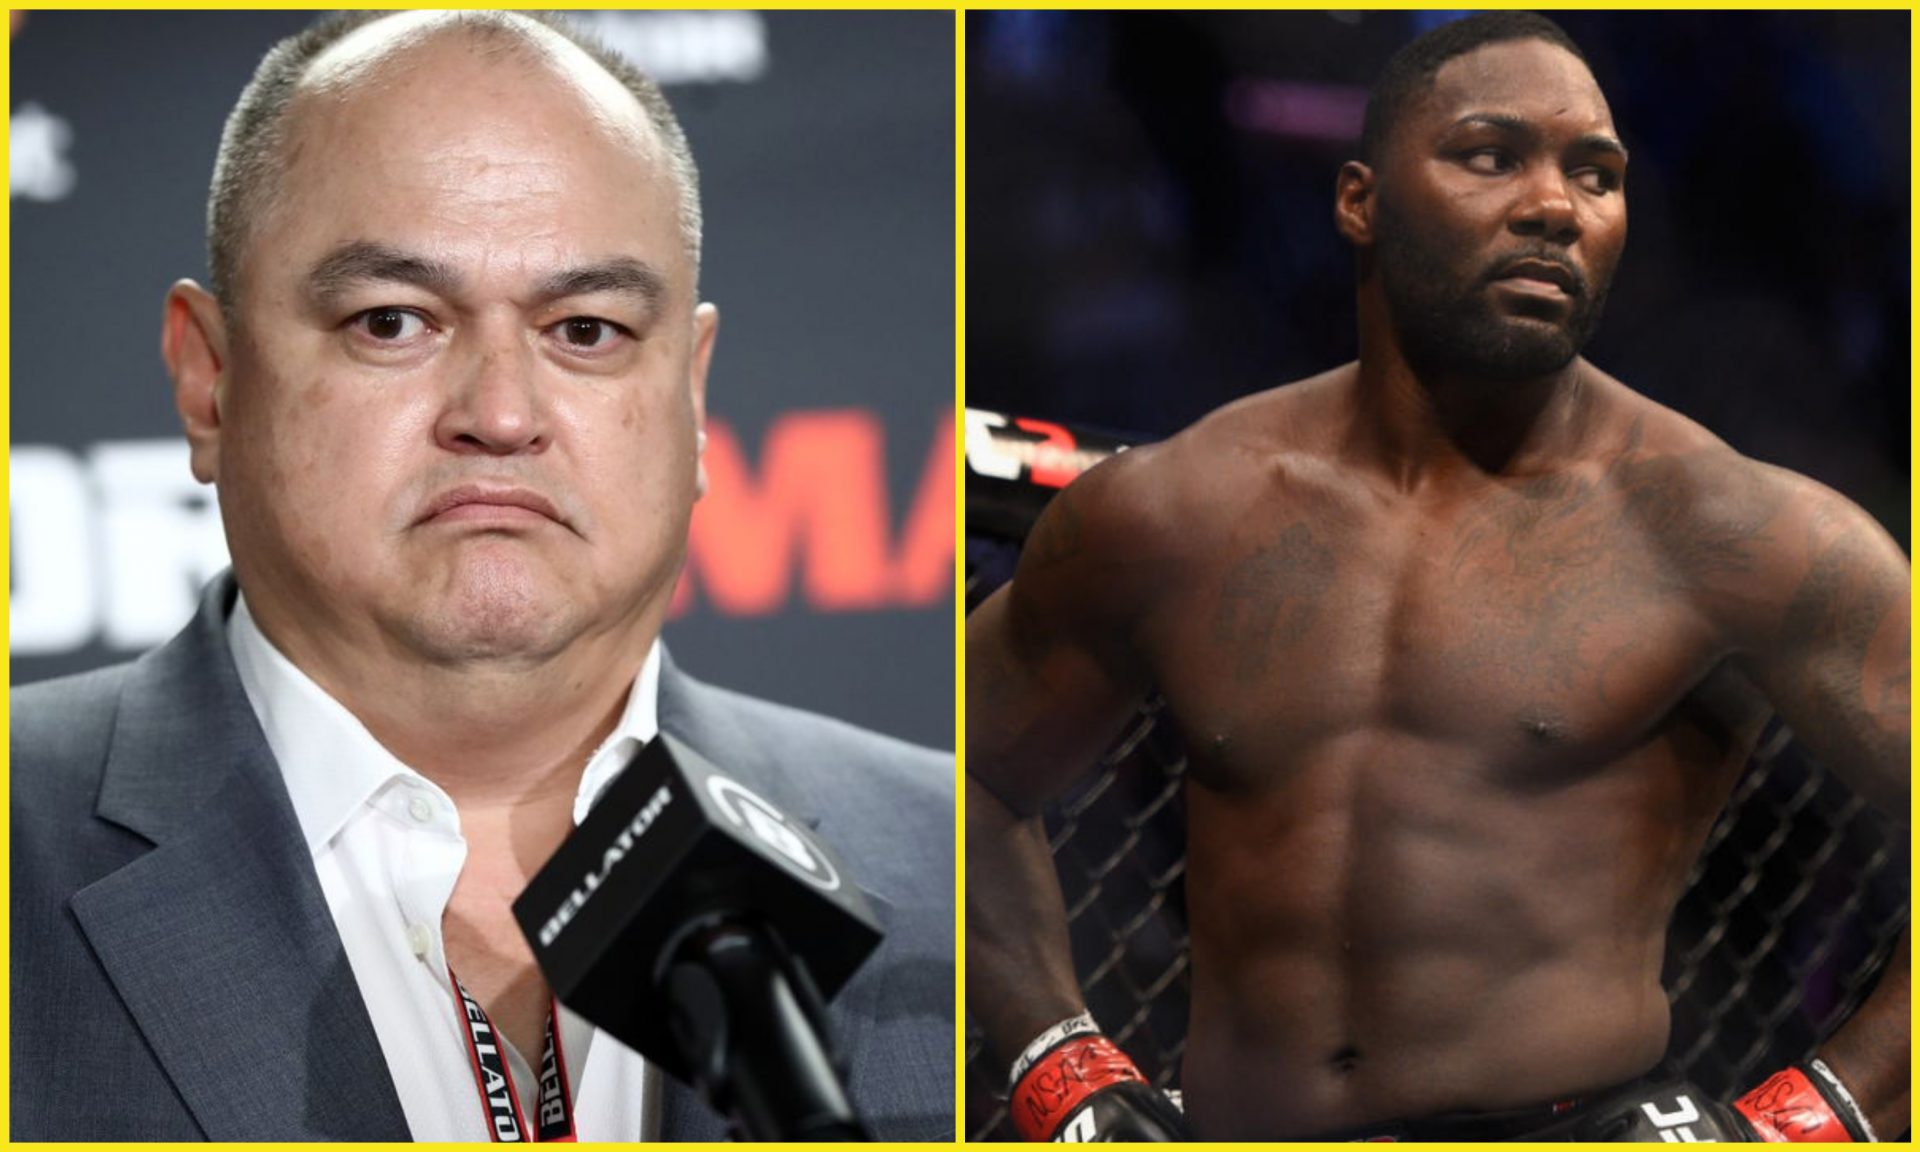 Scott Coker outlines Bellator's plan for Anthony Johnson - Anthony Johnson